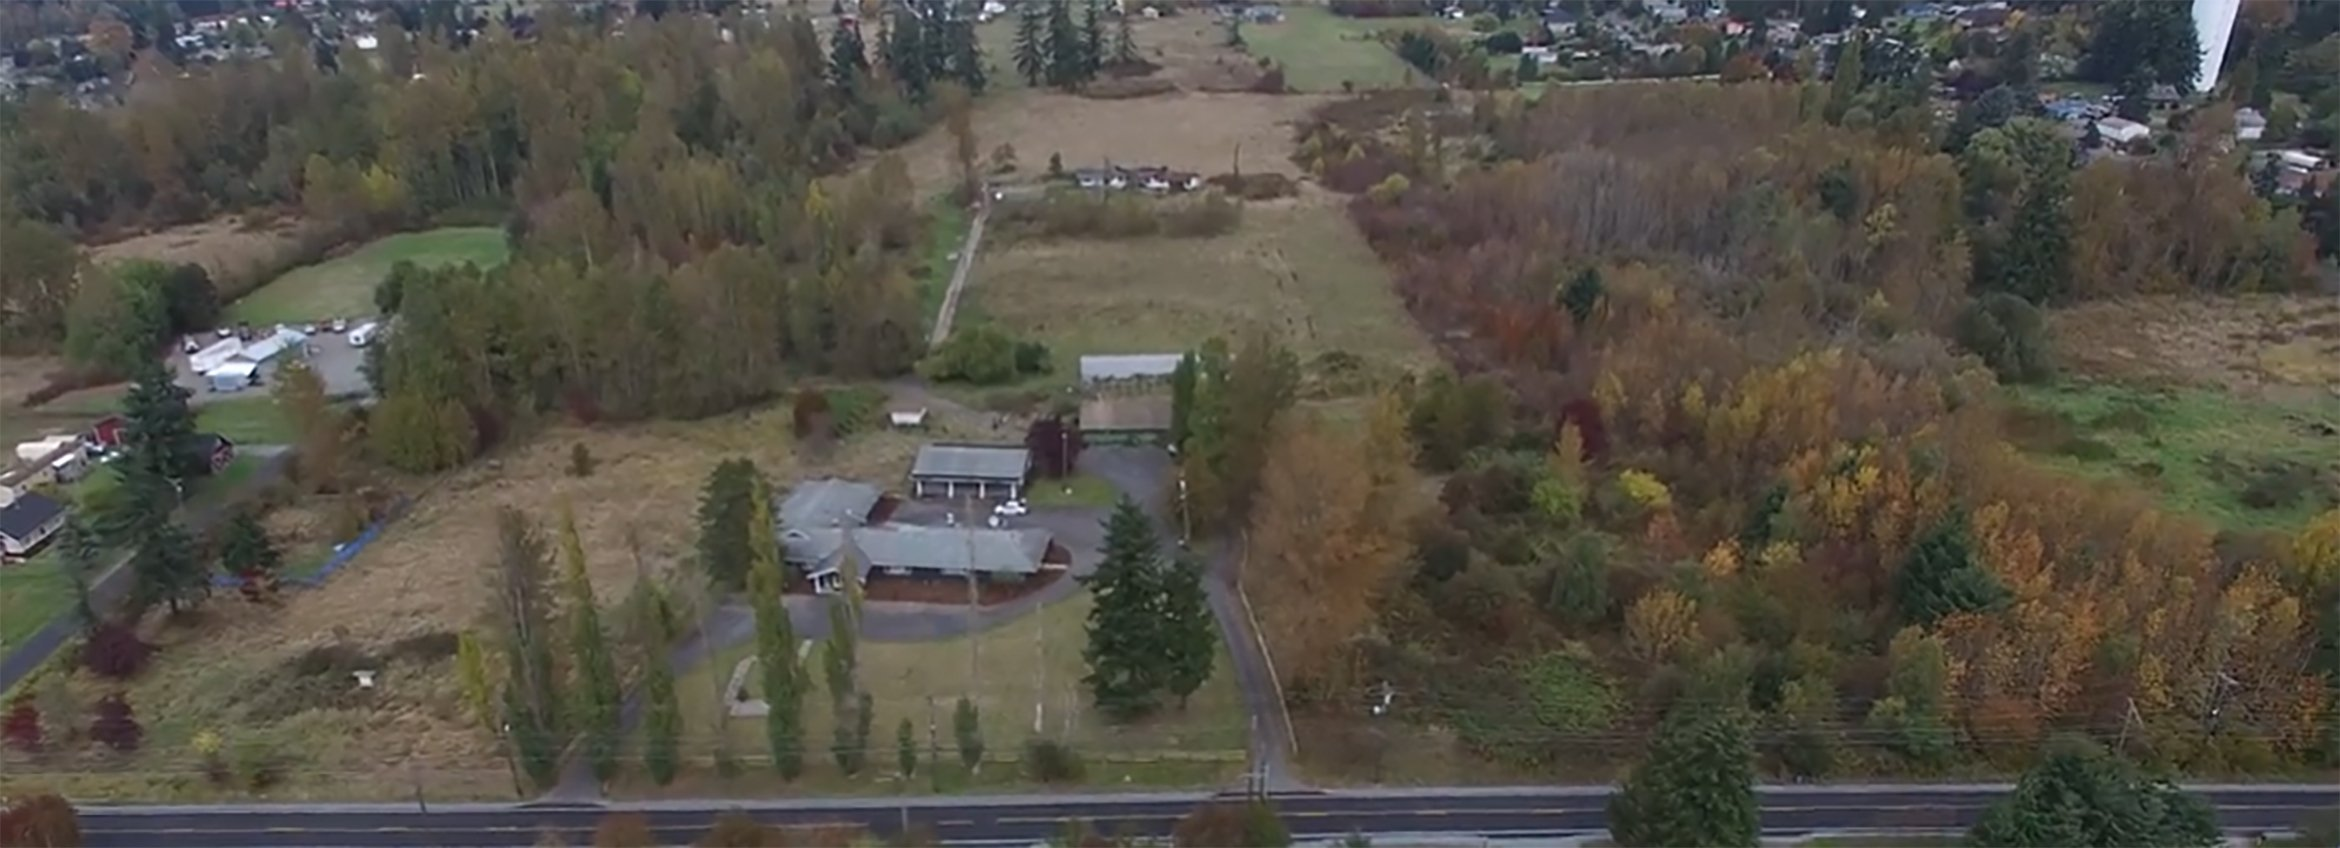 Aerial view of Amara's property in Pierce County